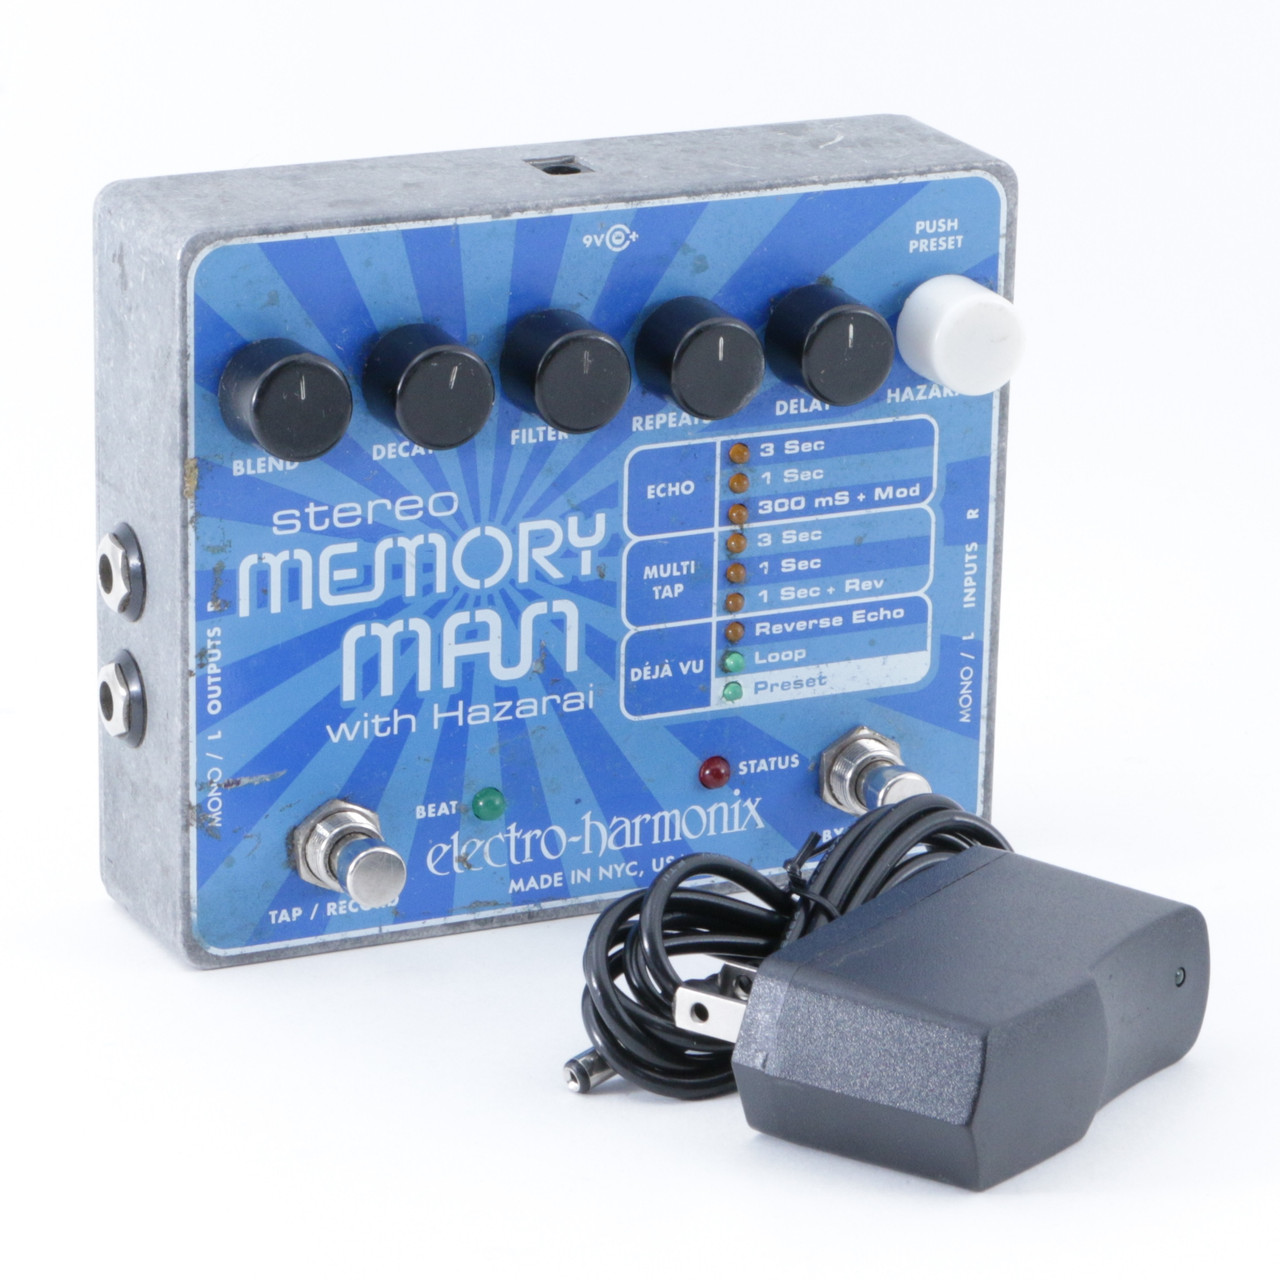 electro harmonix stereo memory man w hazarai delay guitar effects pedal p 08581. Black Bedroom Furniture Sets. Home Design Ideas